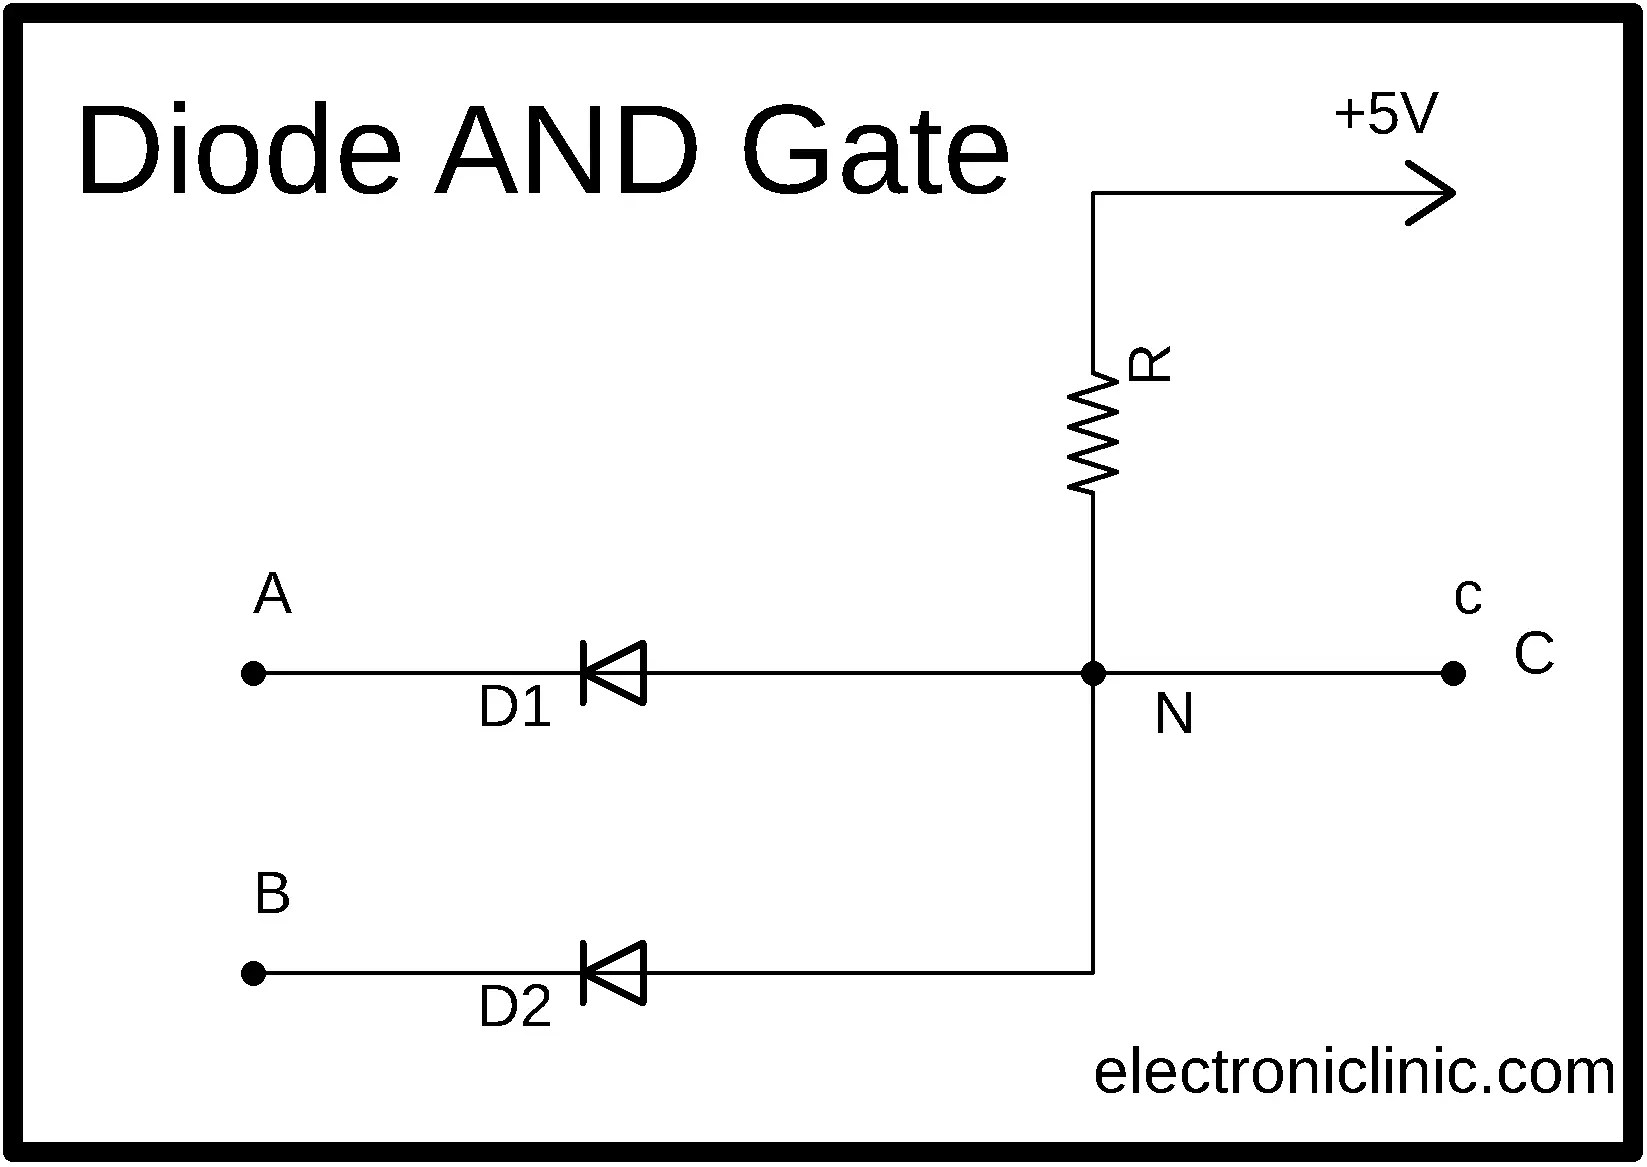 images?q=tbn:ANd9GcQh_l3eQ5xwiPy07kGEXjmjgmBKBRB7H2mRxCGhv1tFWg5c_mWT Circuit Diagram Of And Gate Using Diodes